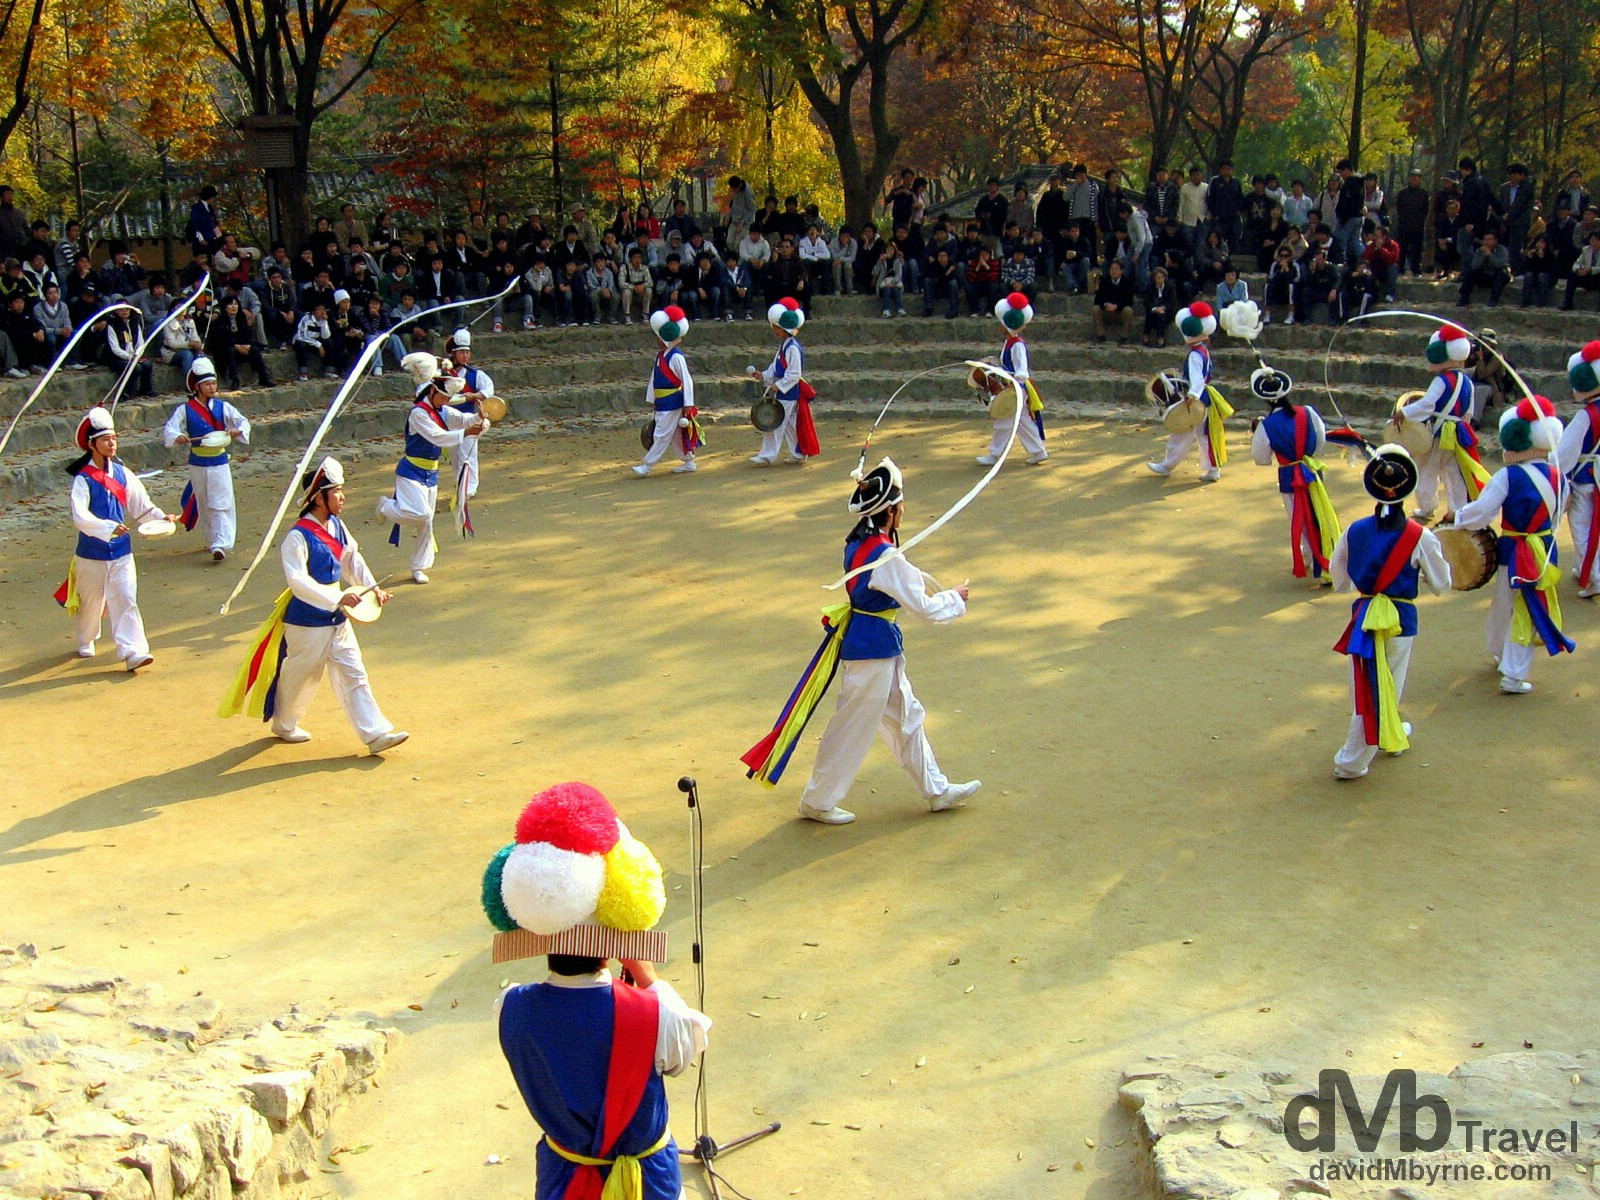 The Farmer's Dance display at the Folk Village in Yongin, South Korea. November 7th, 2007.